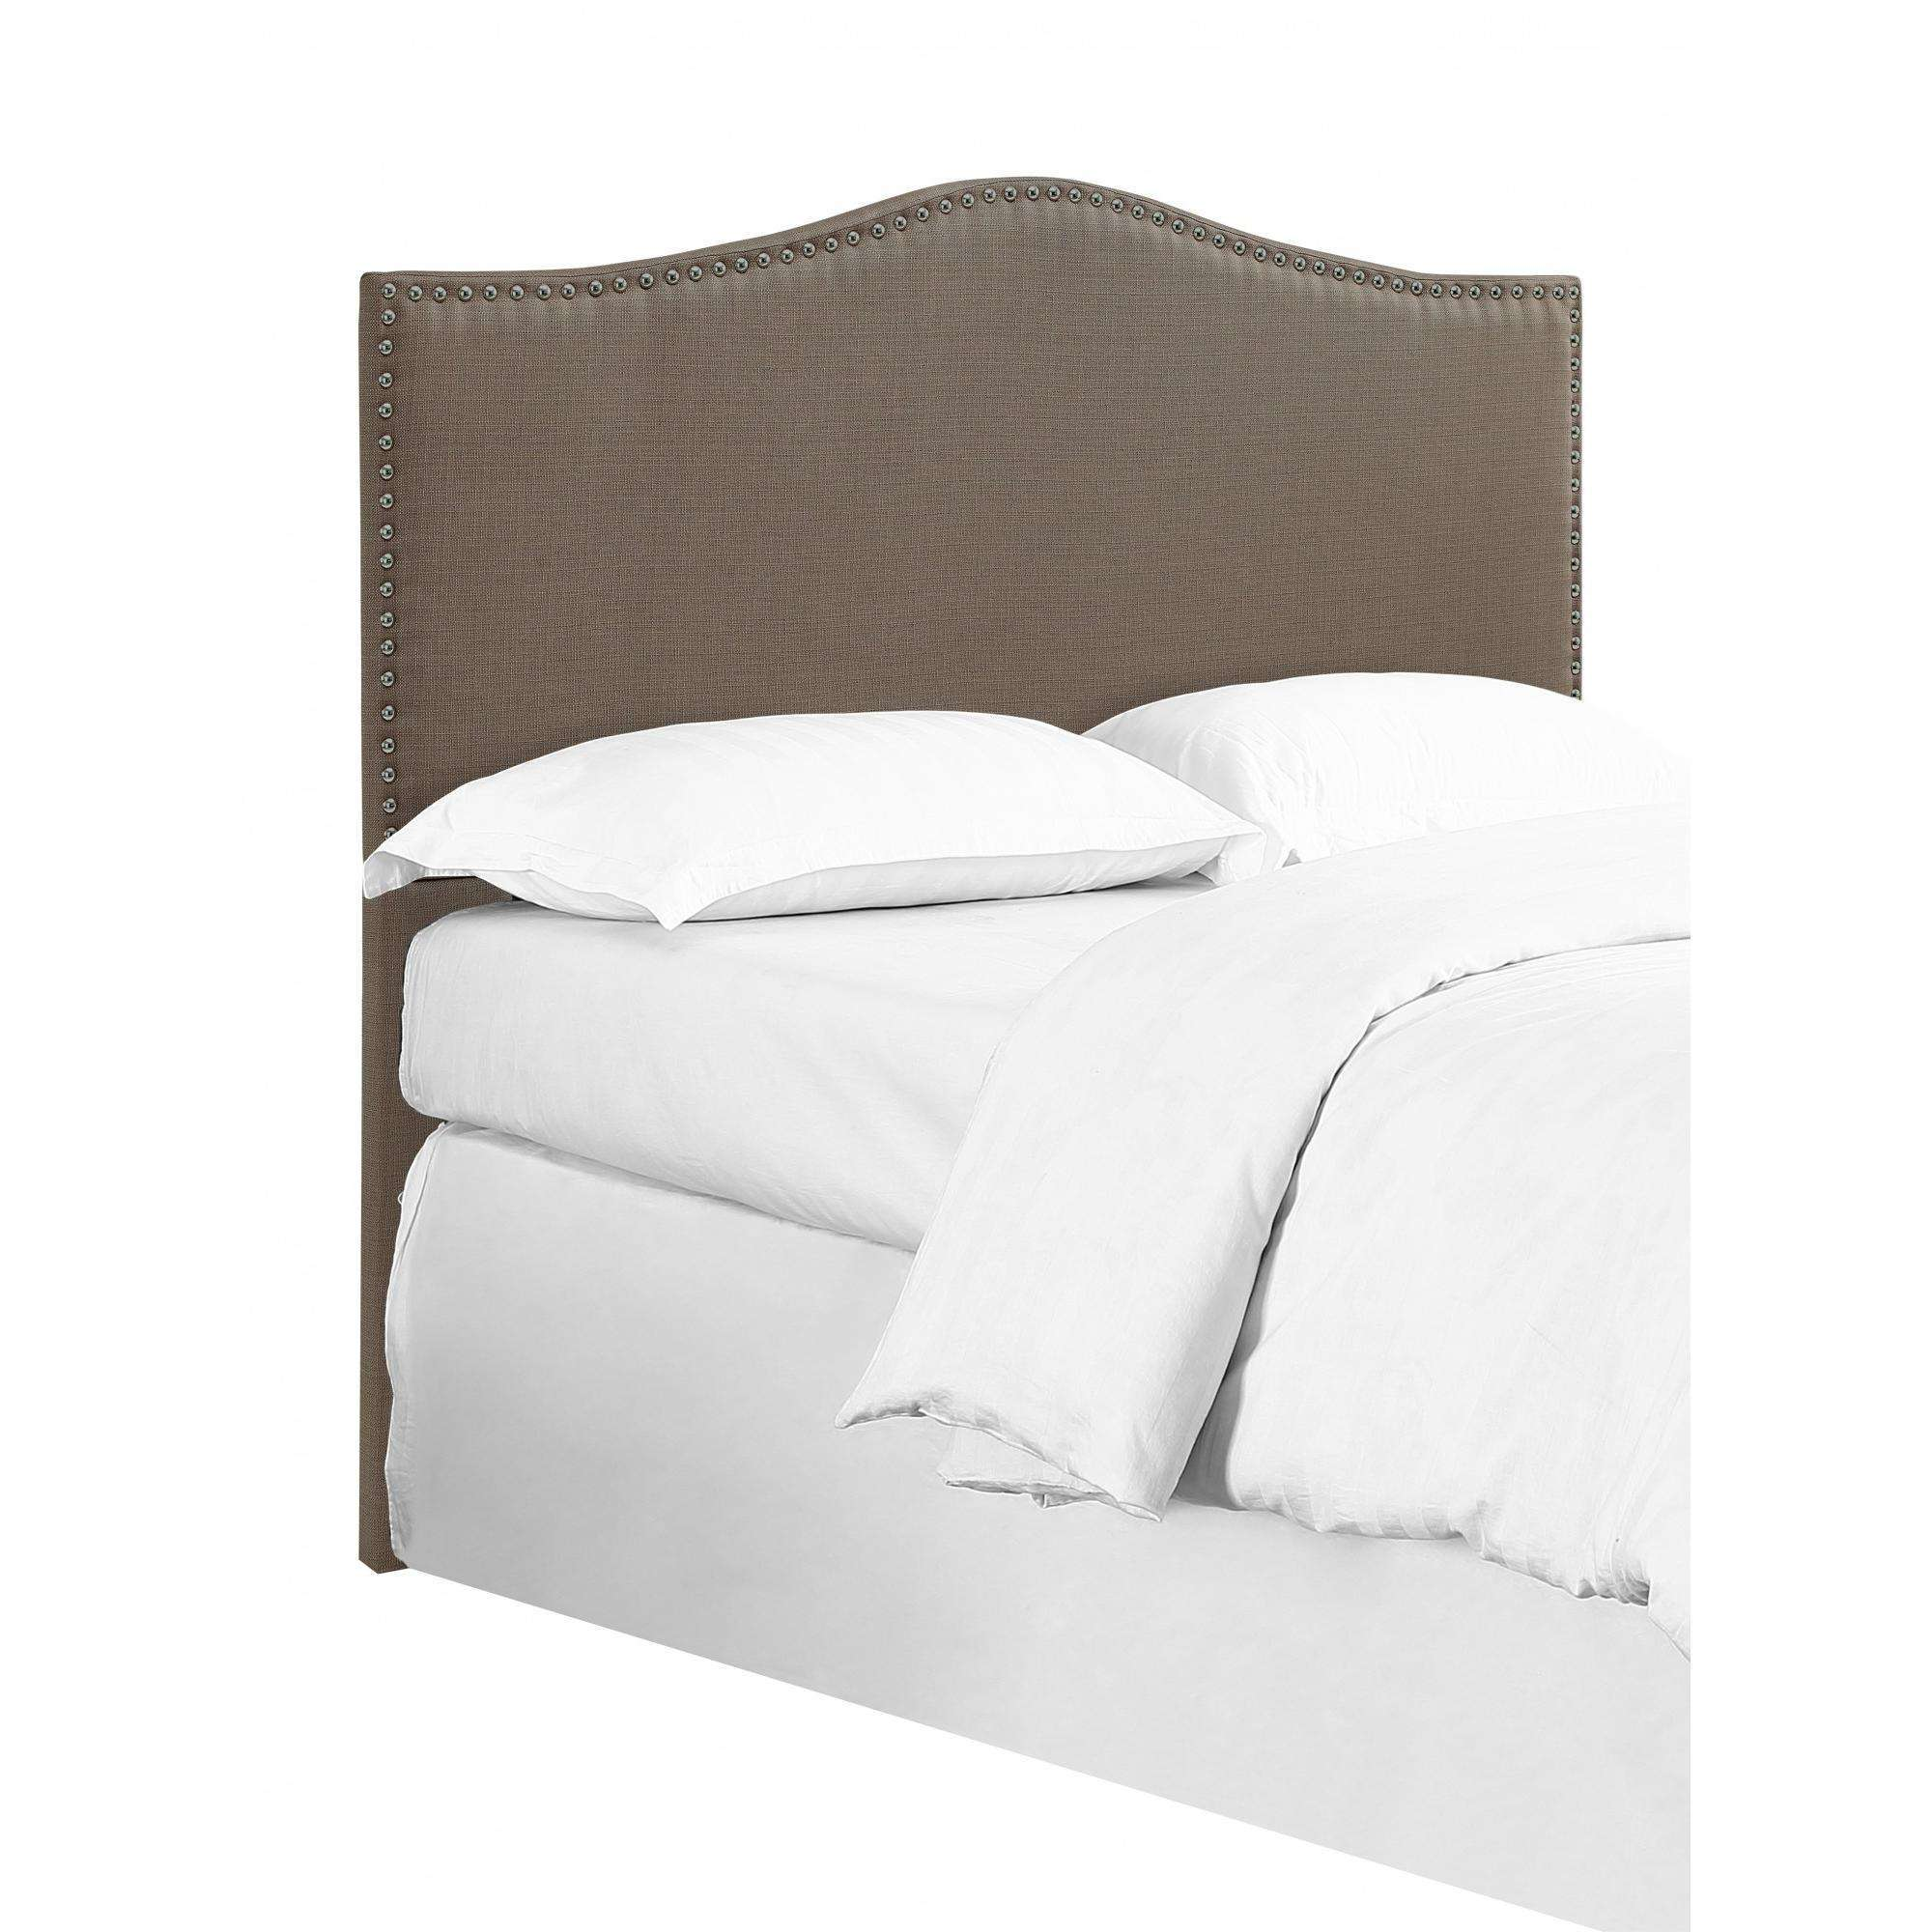 DHI Paige Headboard With Nailhead Trim, Pebble Stone, Full Queen by Dwell Home Furnishings LLC